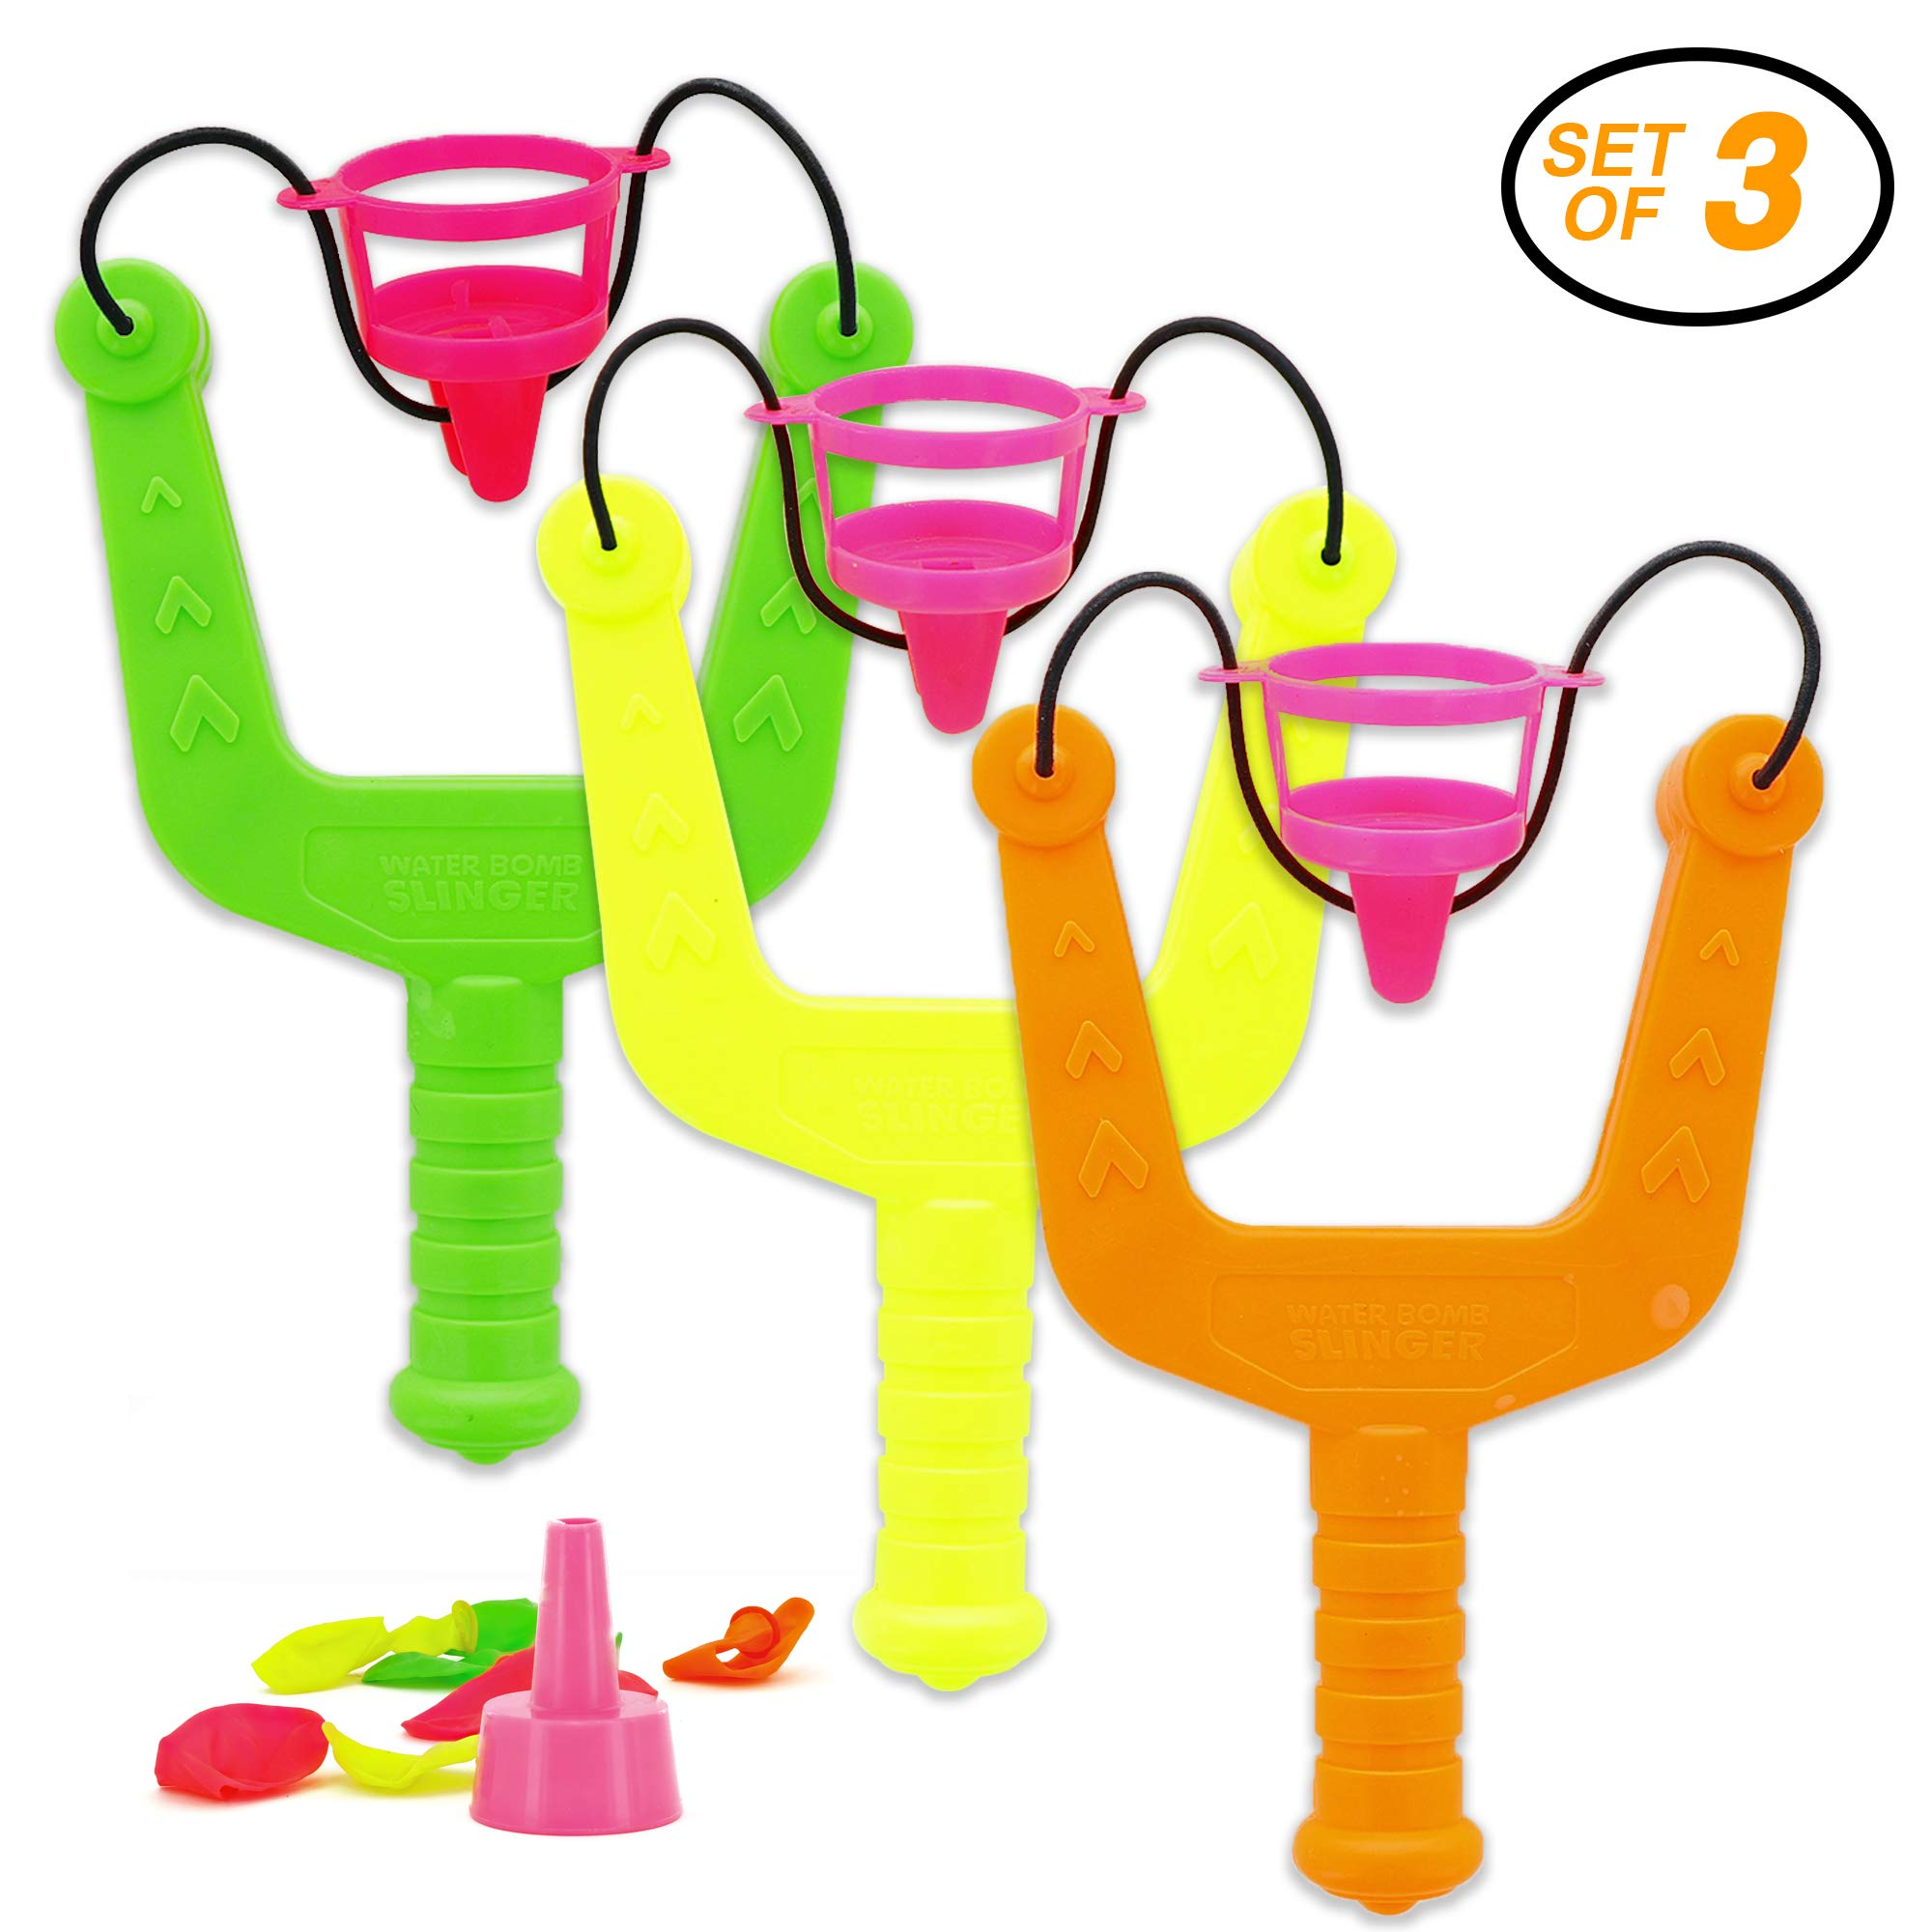 Srenta 8-Inch Kids Toy Water Balloon Launcher, Epic Fight 10 Balloons and Slingshot, Pack of 3 by Srenta